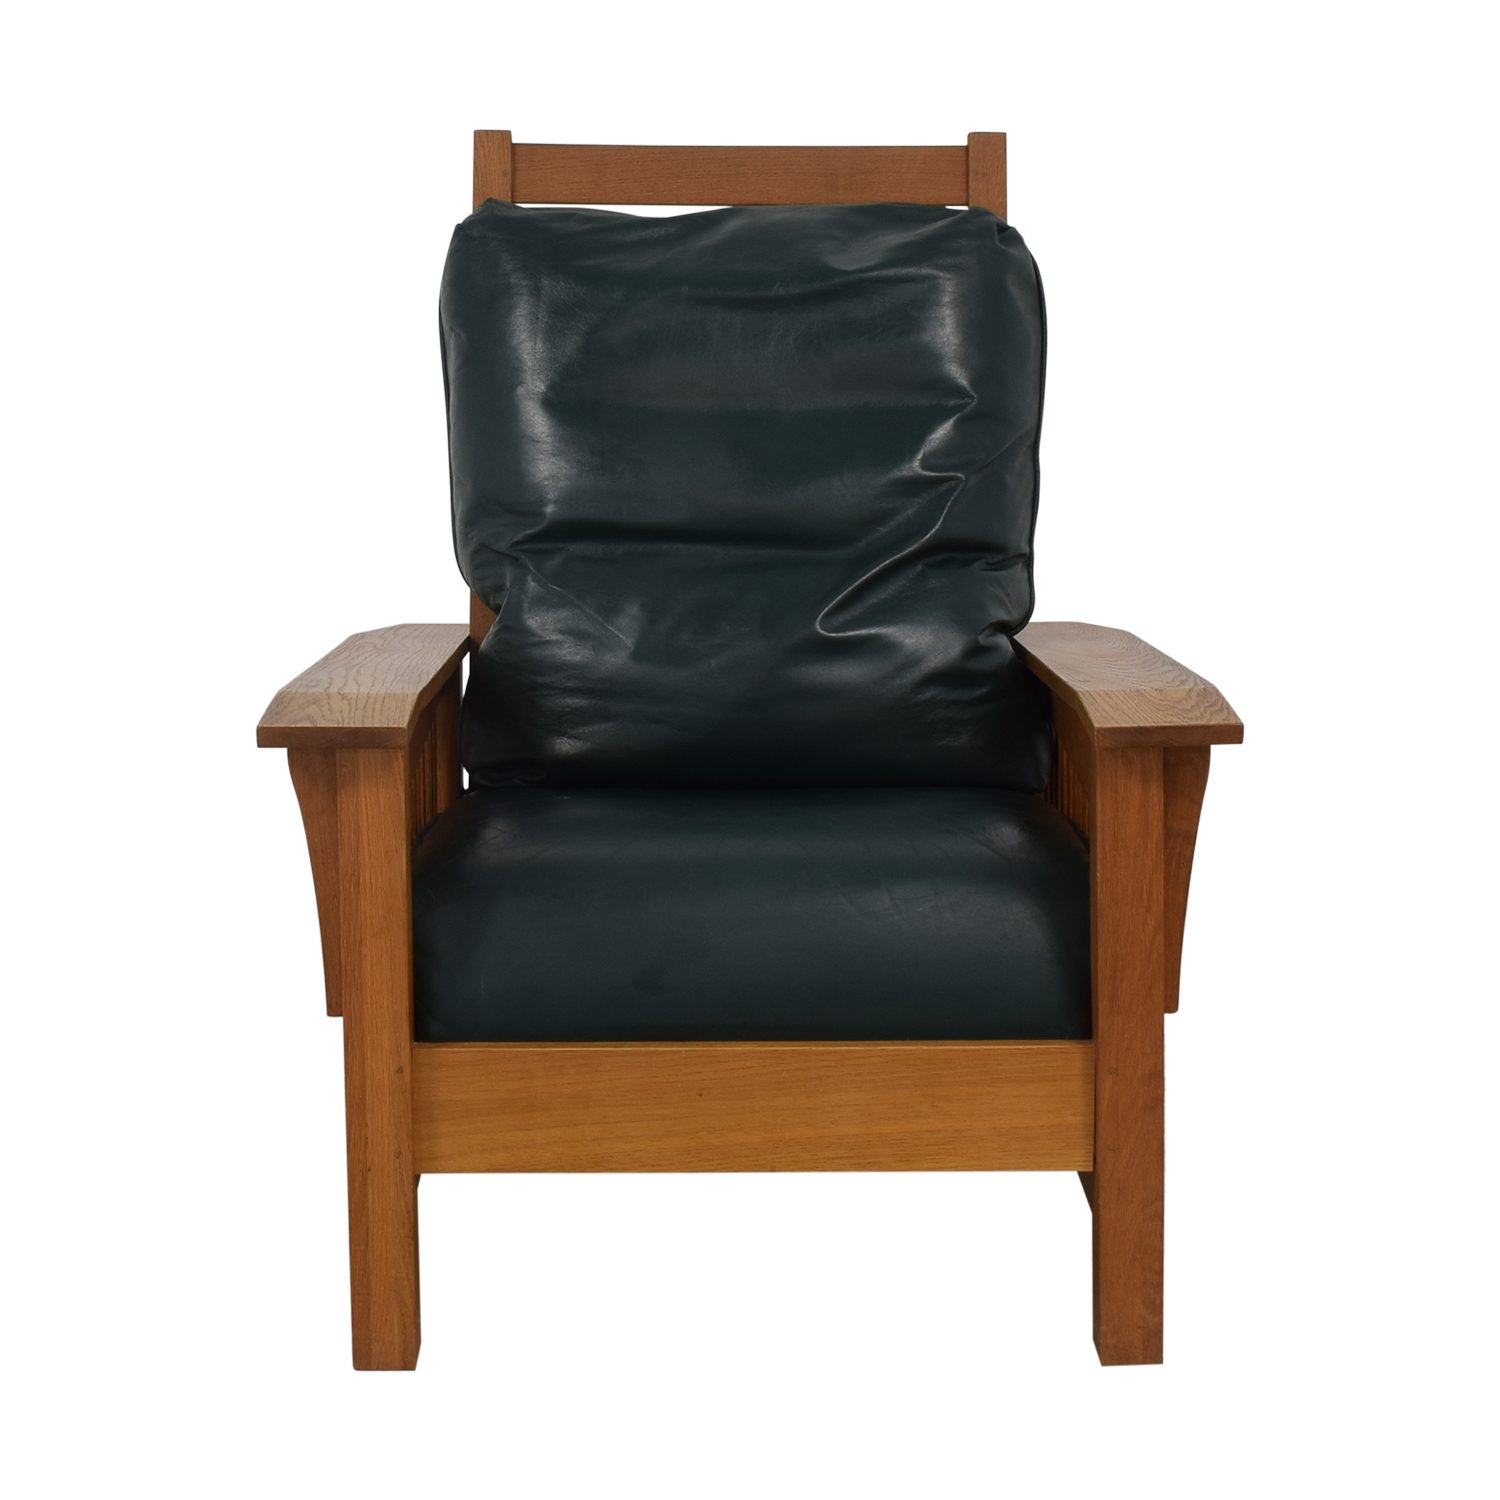 shop  Custom Recliner Sofa Chair online